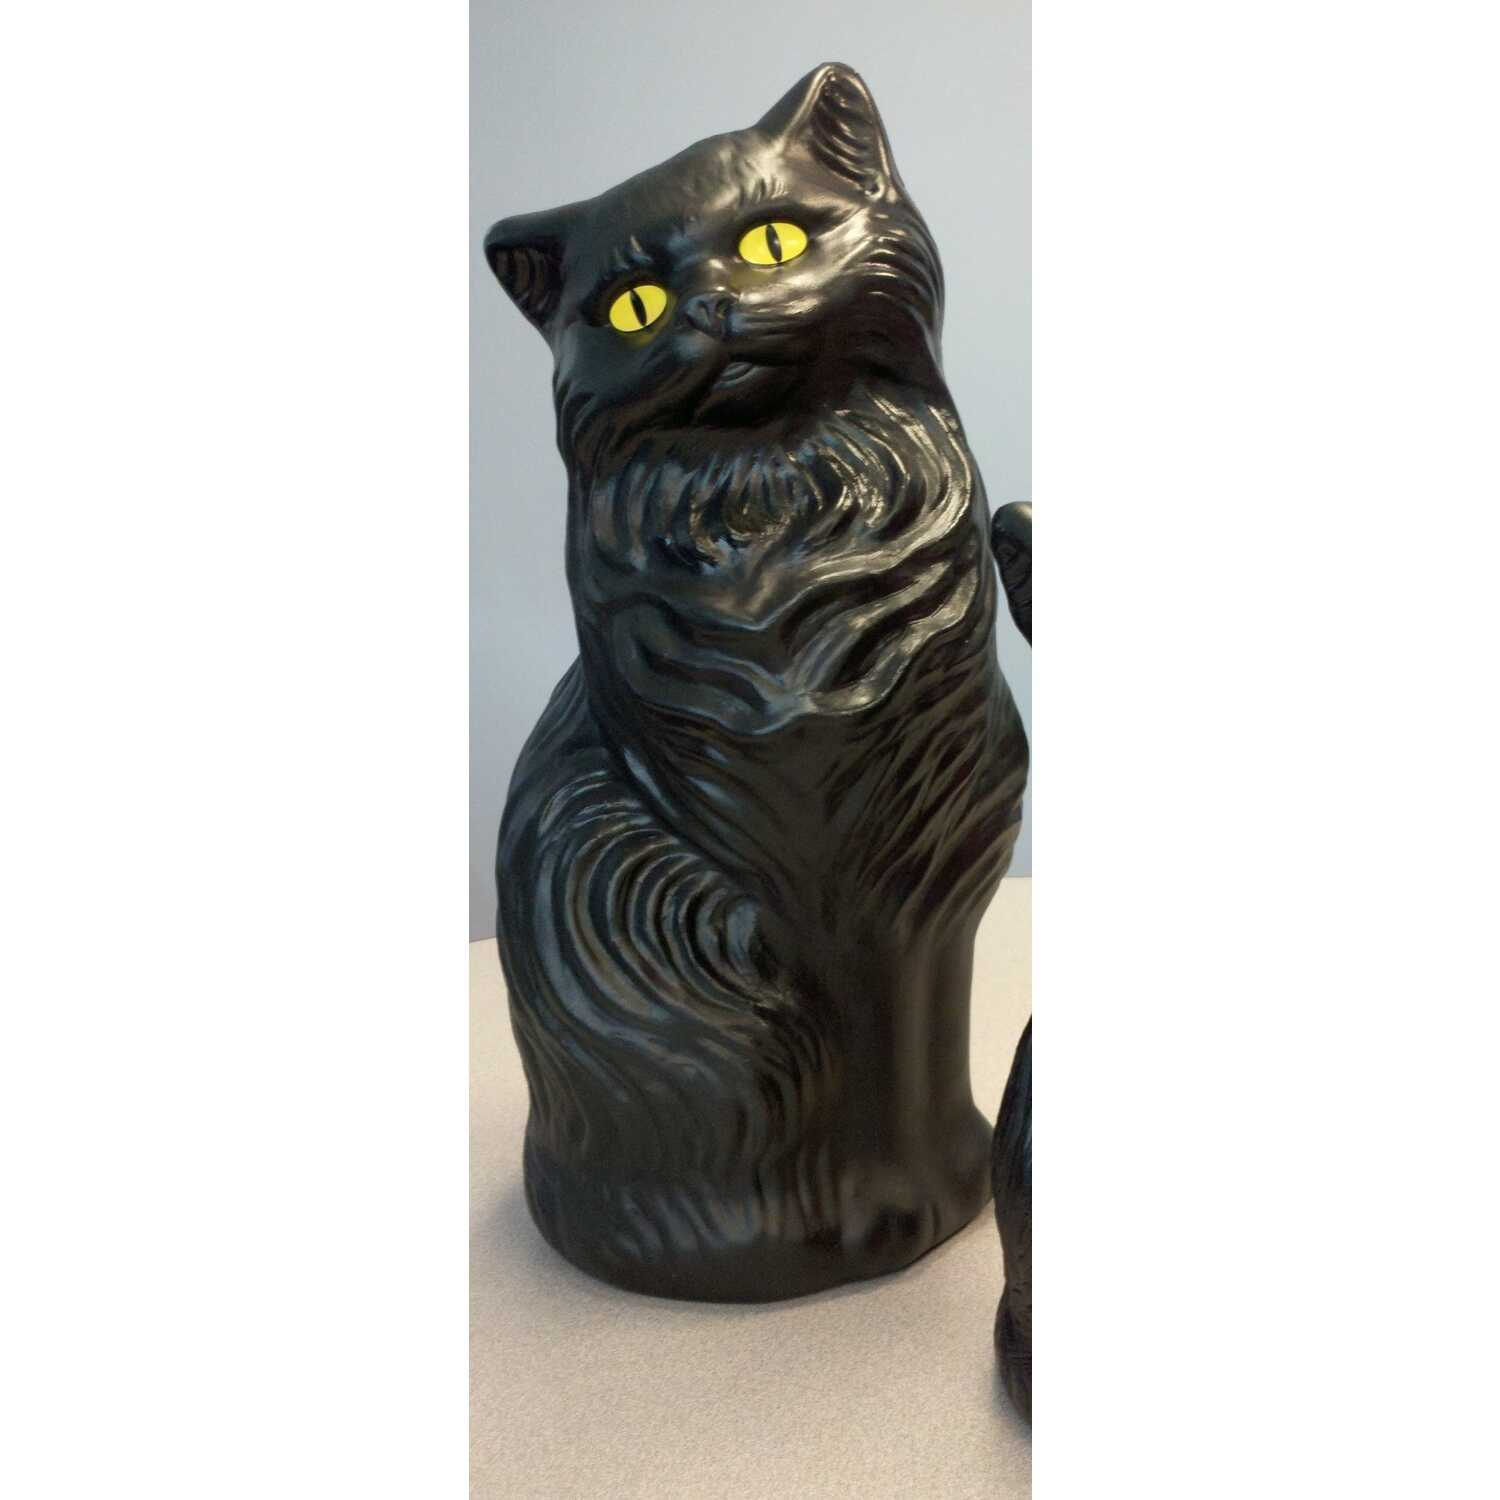 Union Products  Blow Mold Cat  Halloween Decoration  17 in. H x 7 in. W x 17 in. L 1 each